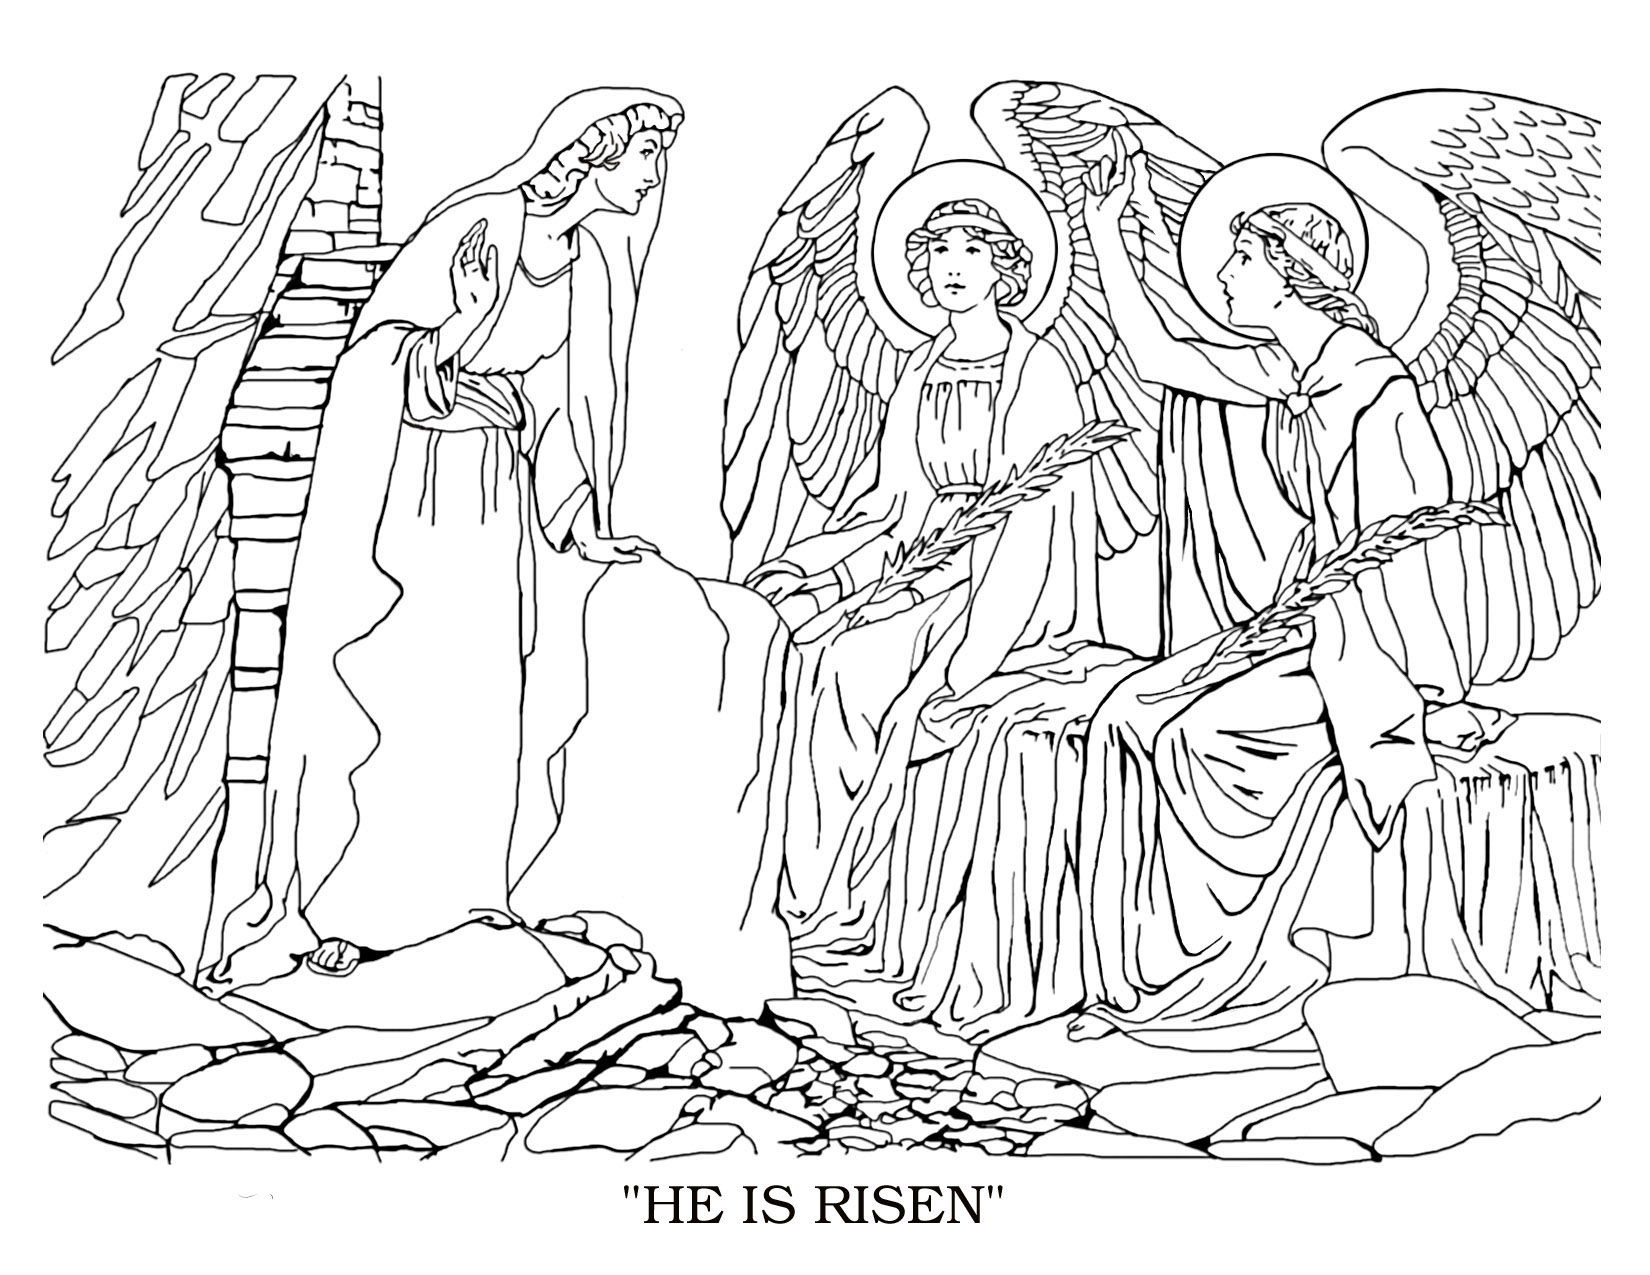 Free online printable bible coloring pages - Children Bible Coloring Pages Download Free Online